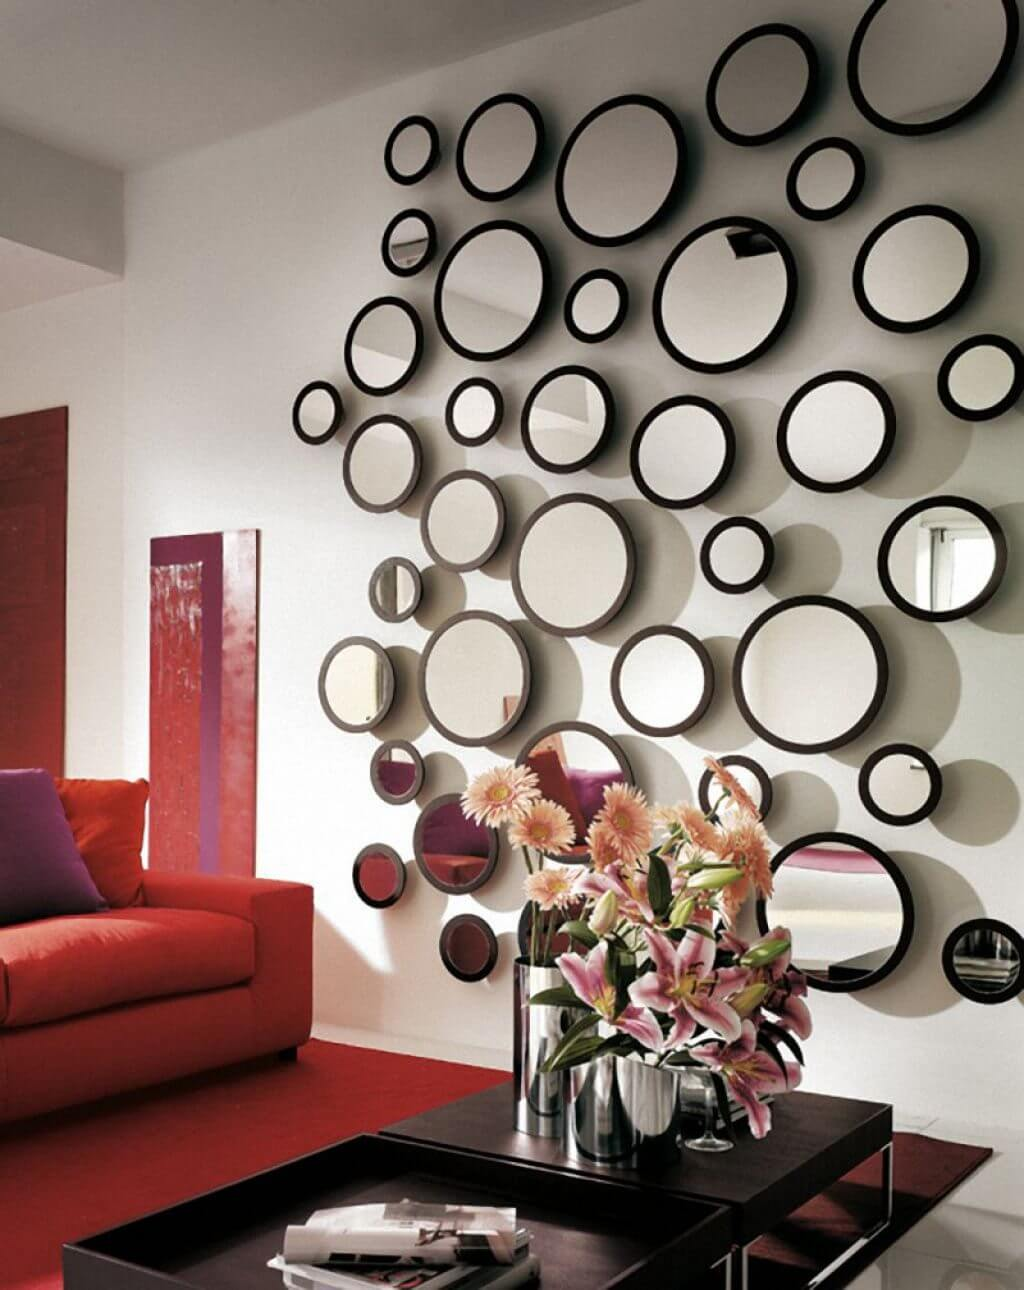 Delicieux Playful Accent Wall Of Round Mirrors